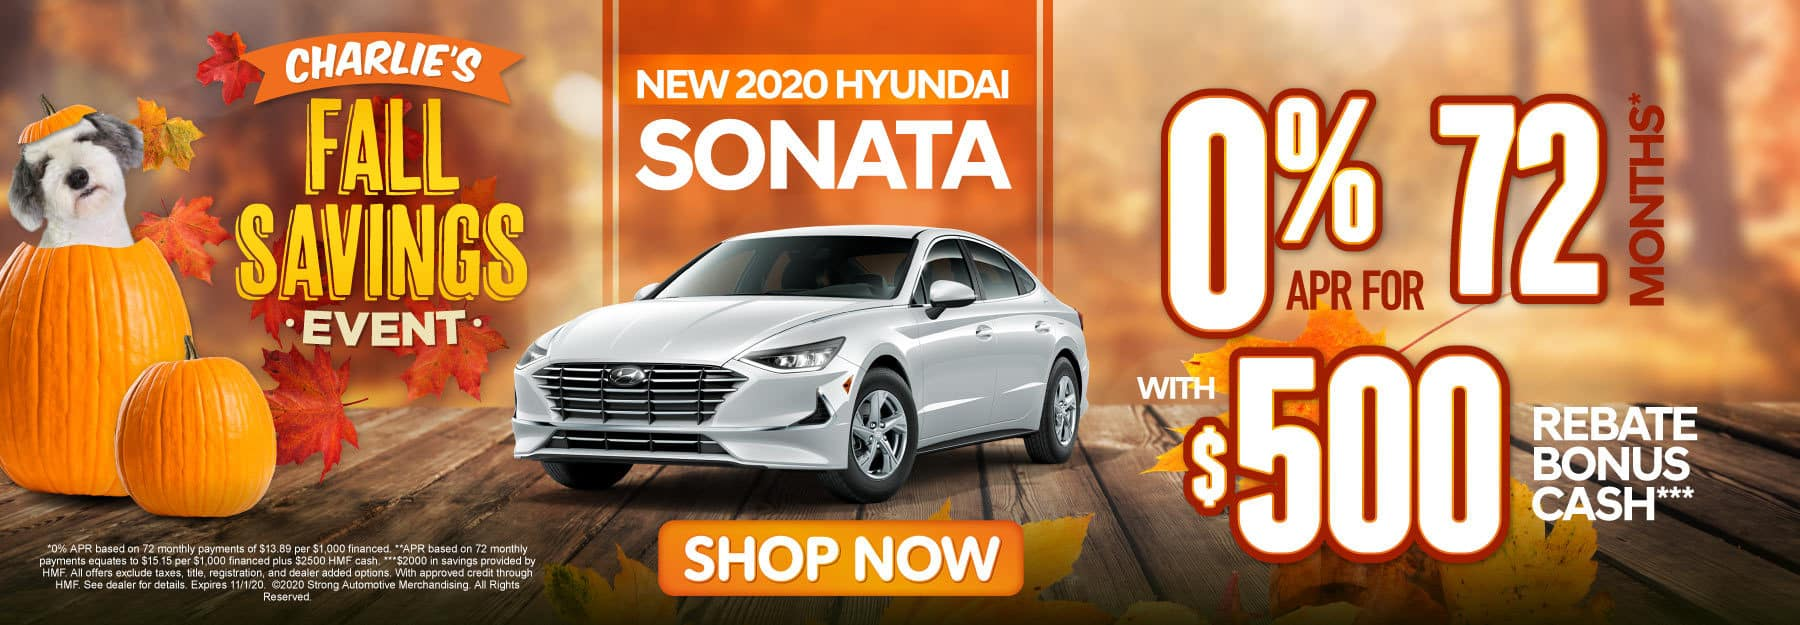 2020 Hyundai Sonata 0% for 72 months with $500 Rebate Bonus Cash - click here to view inventory